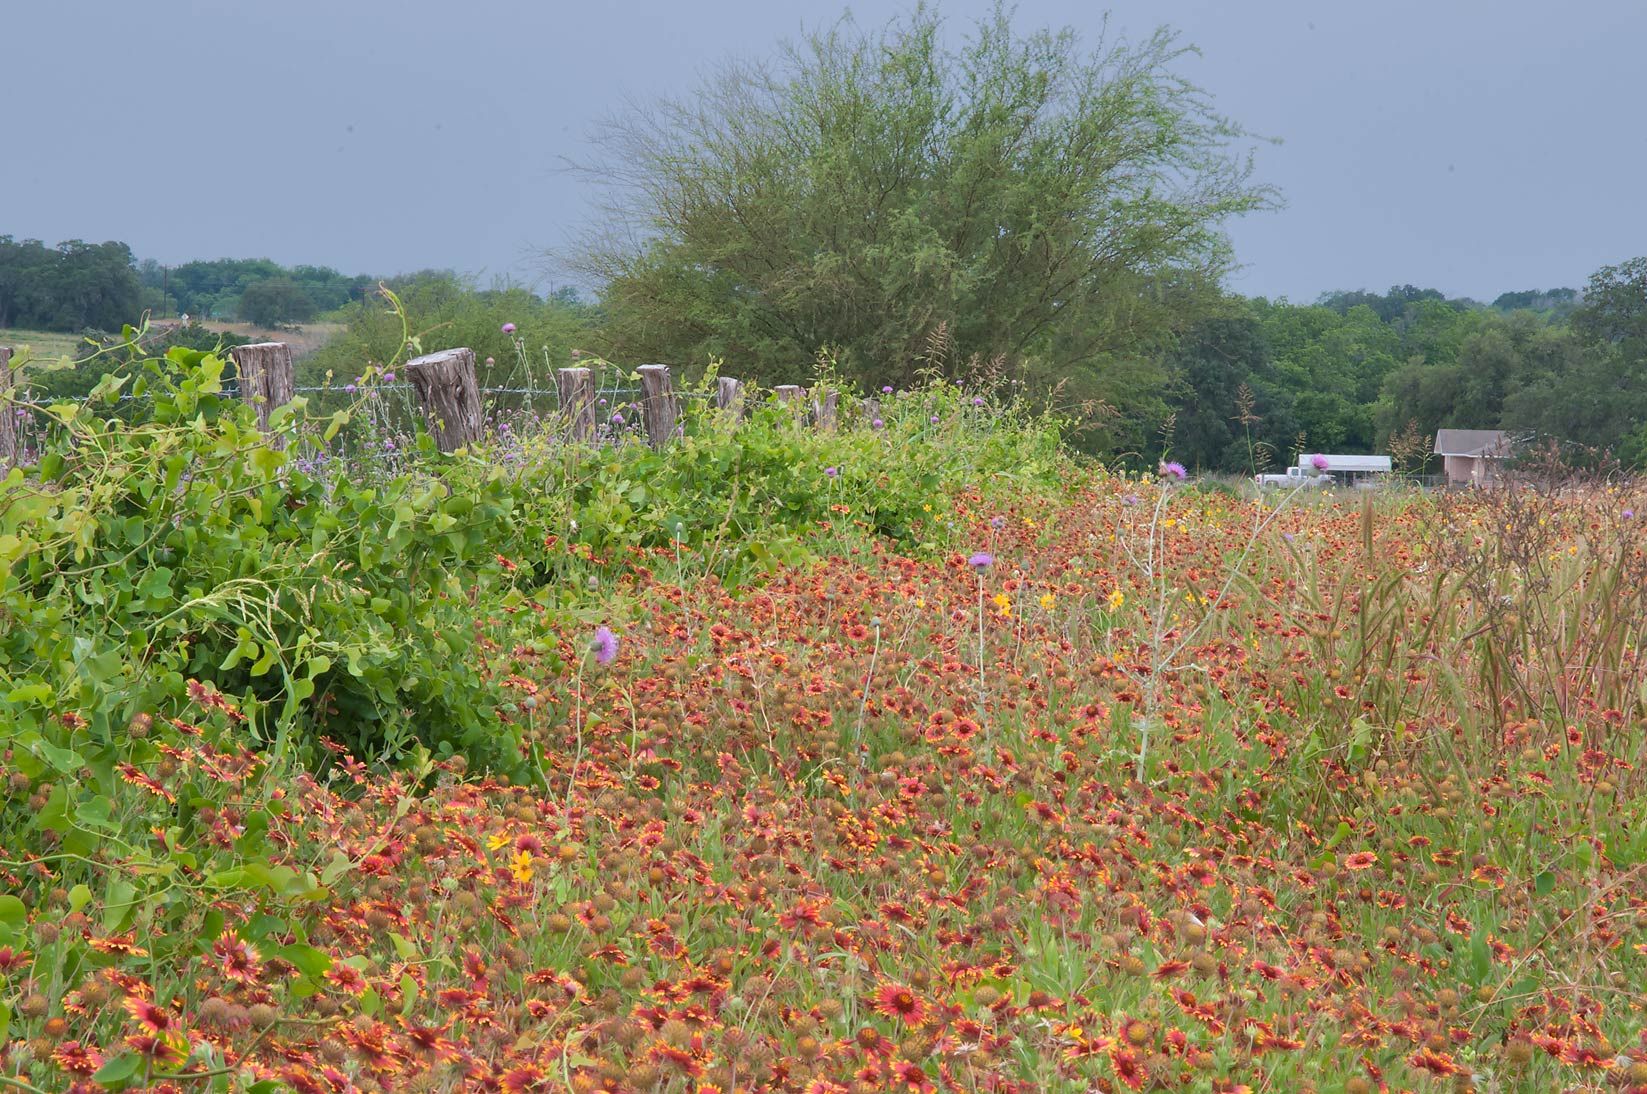 Roadside flowers near Rd. FM 390 south from Lake Somerville. Texas